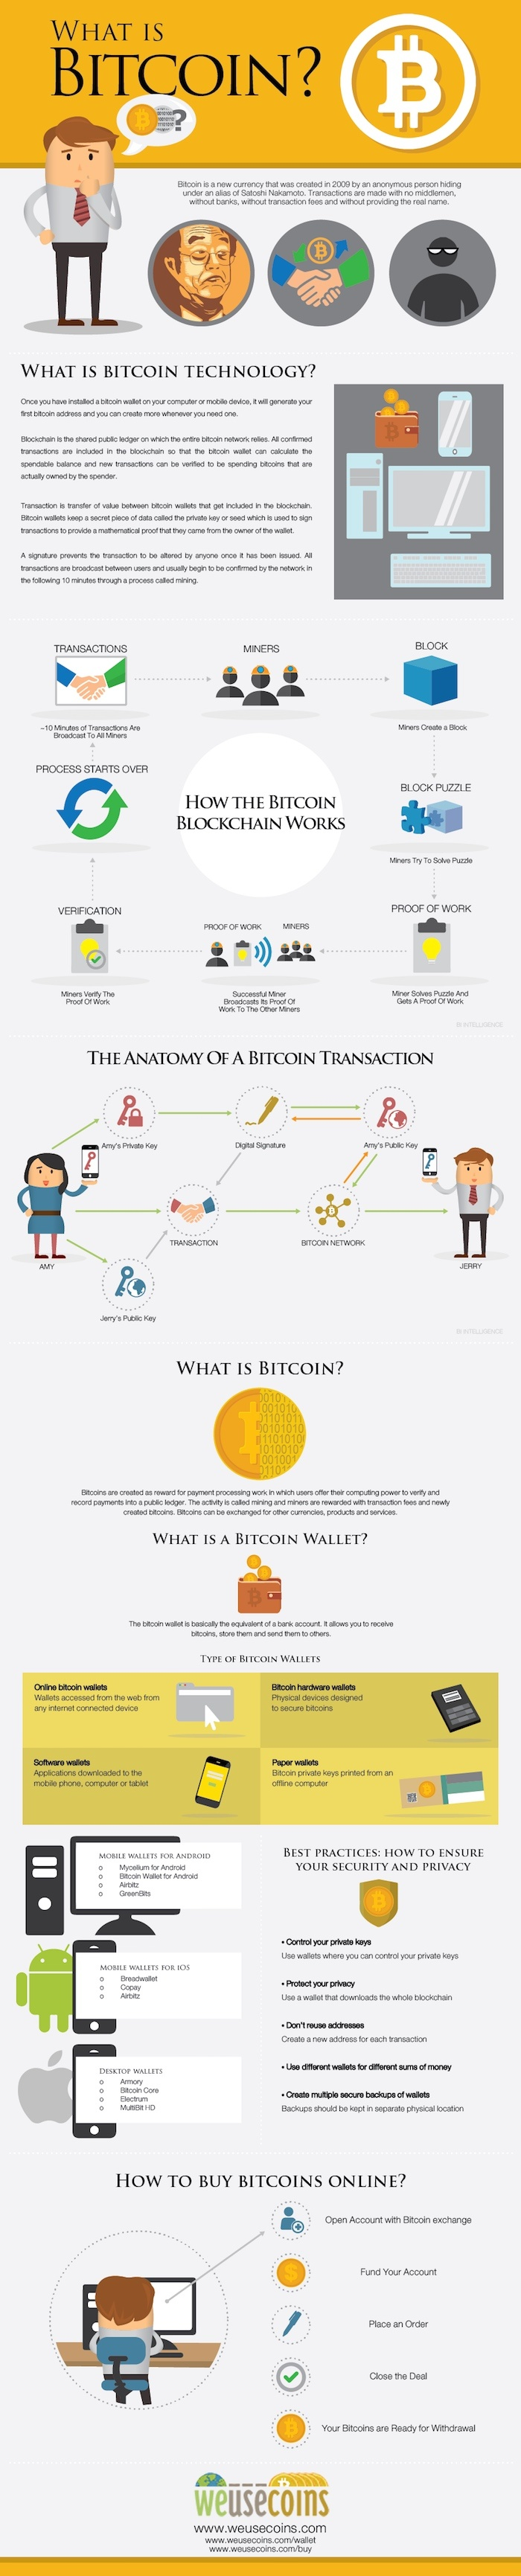 what-is-bitcoin.jpg